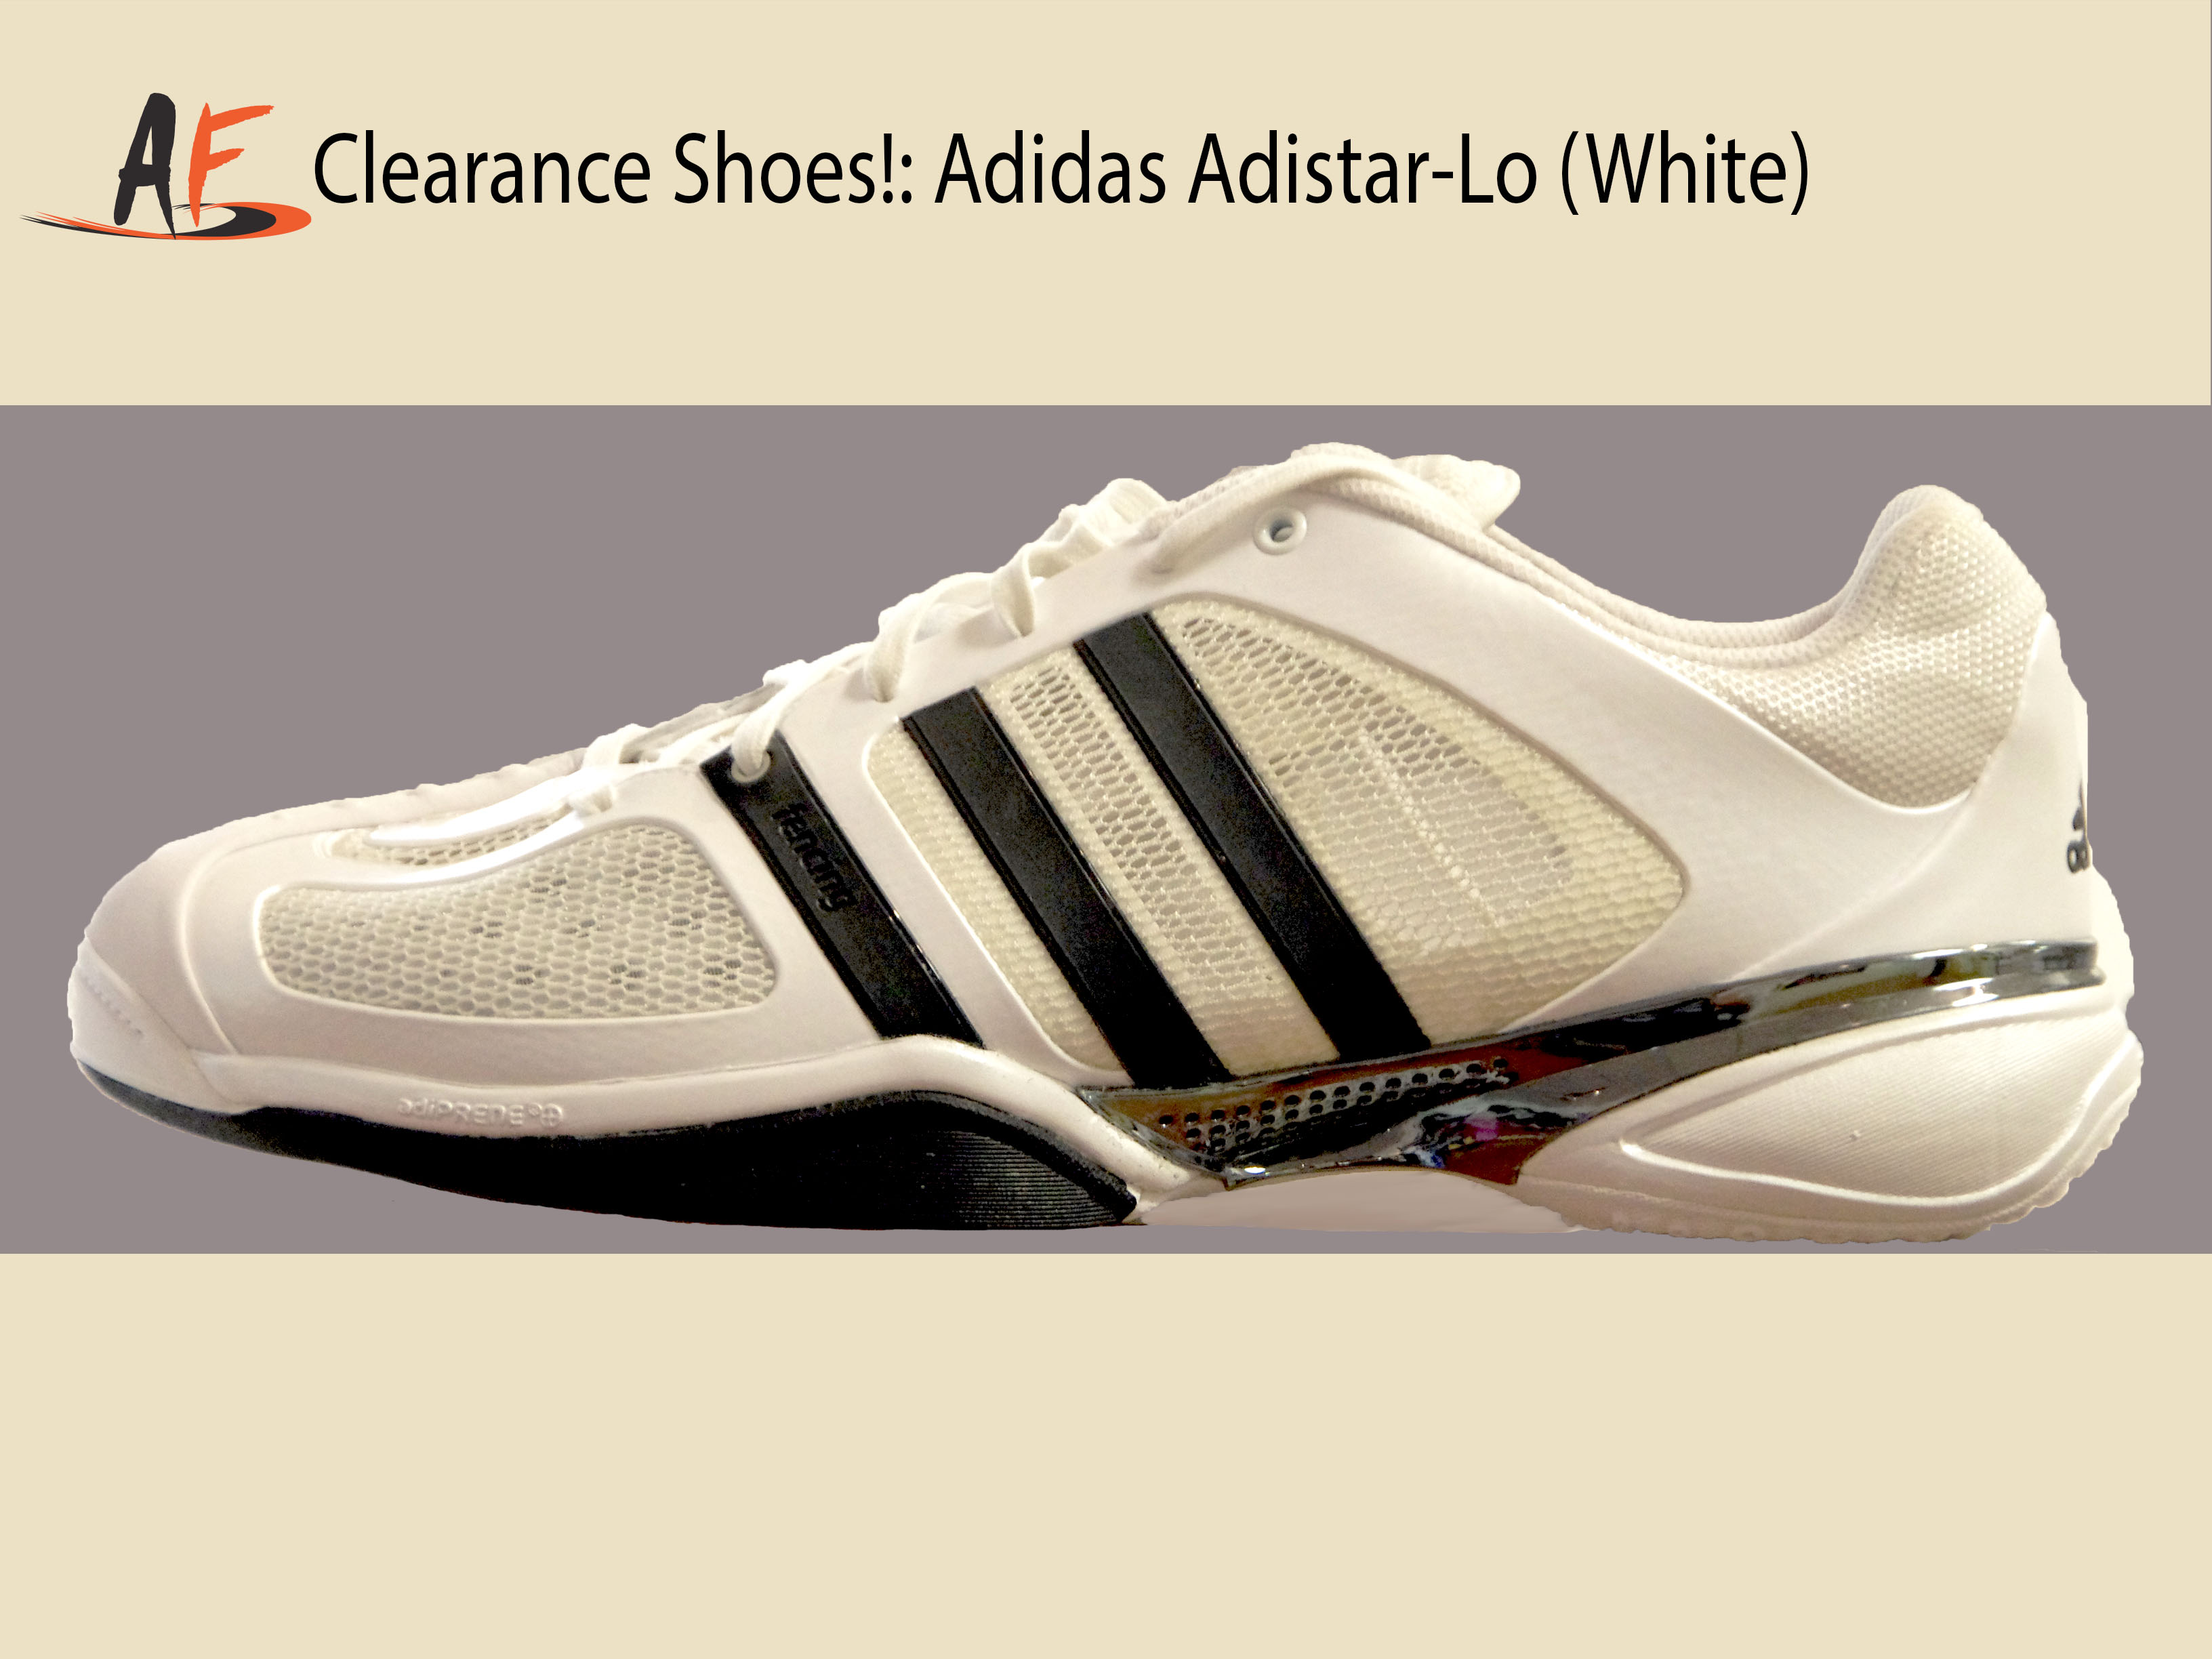 adidas adistar-lo no returns FJGJHFK